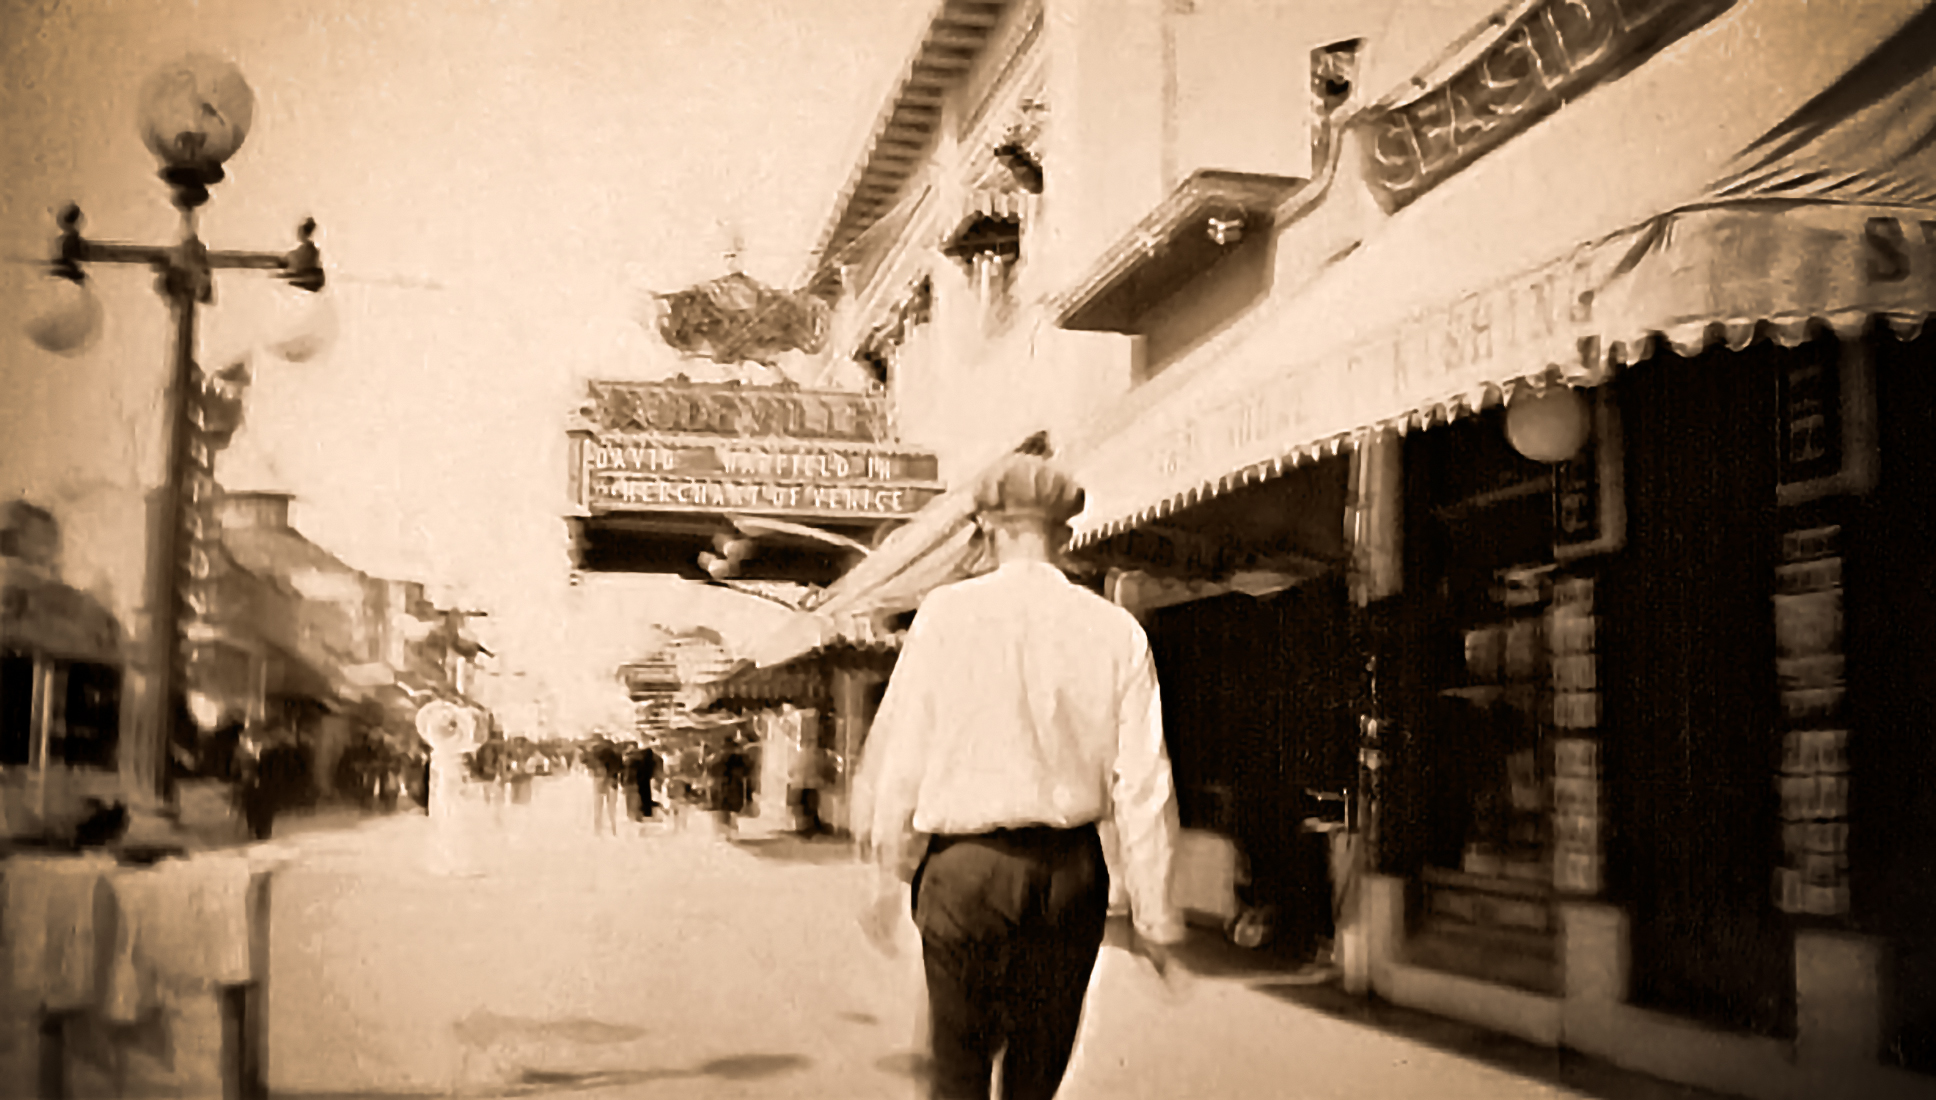 Strand Theatre Pike Ave Long Beach 1924